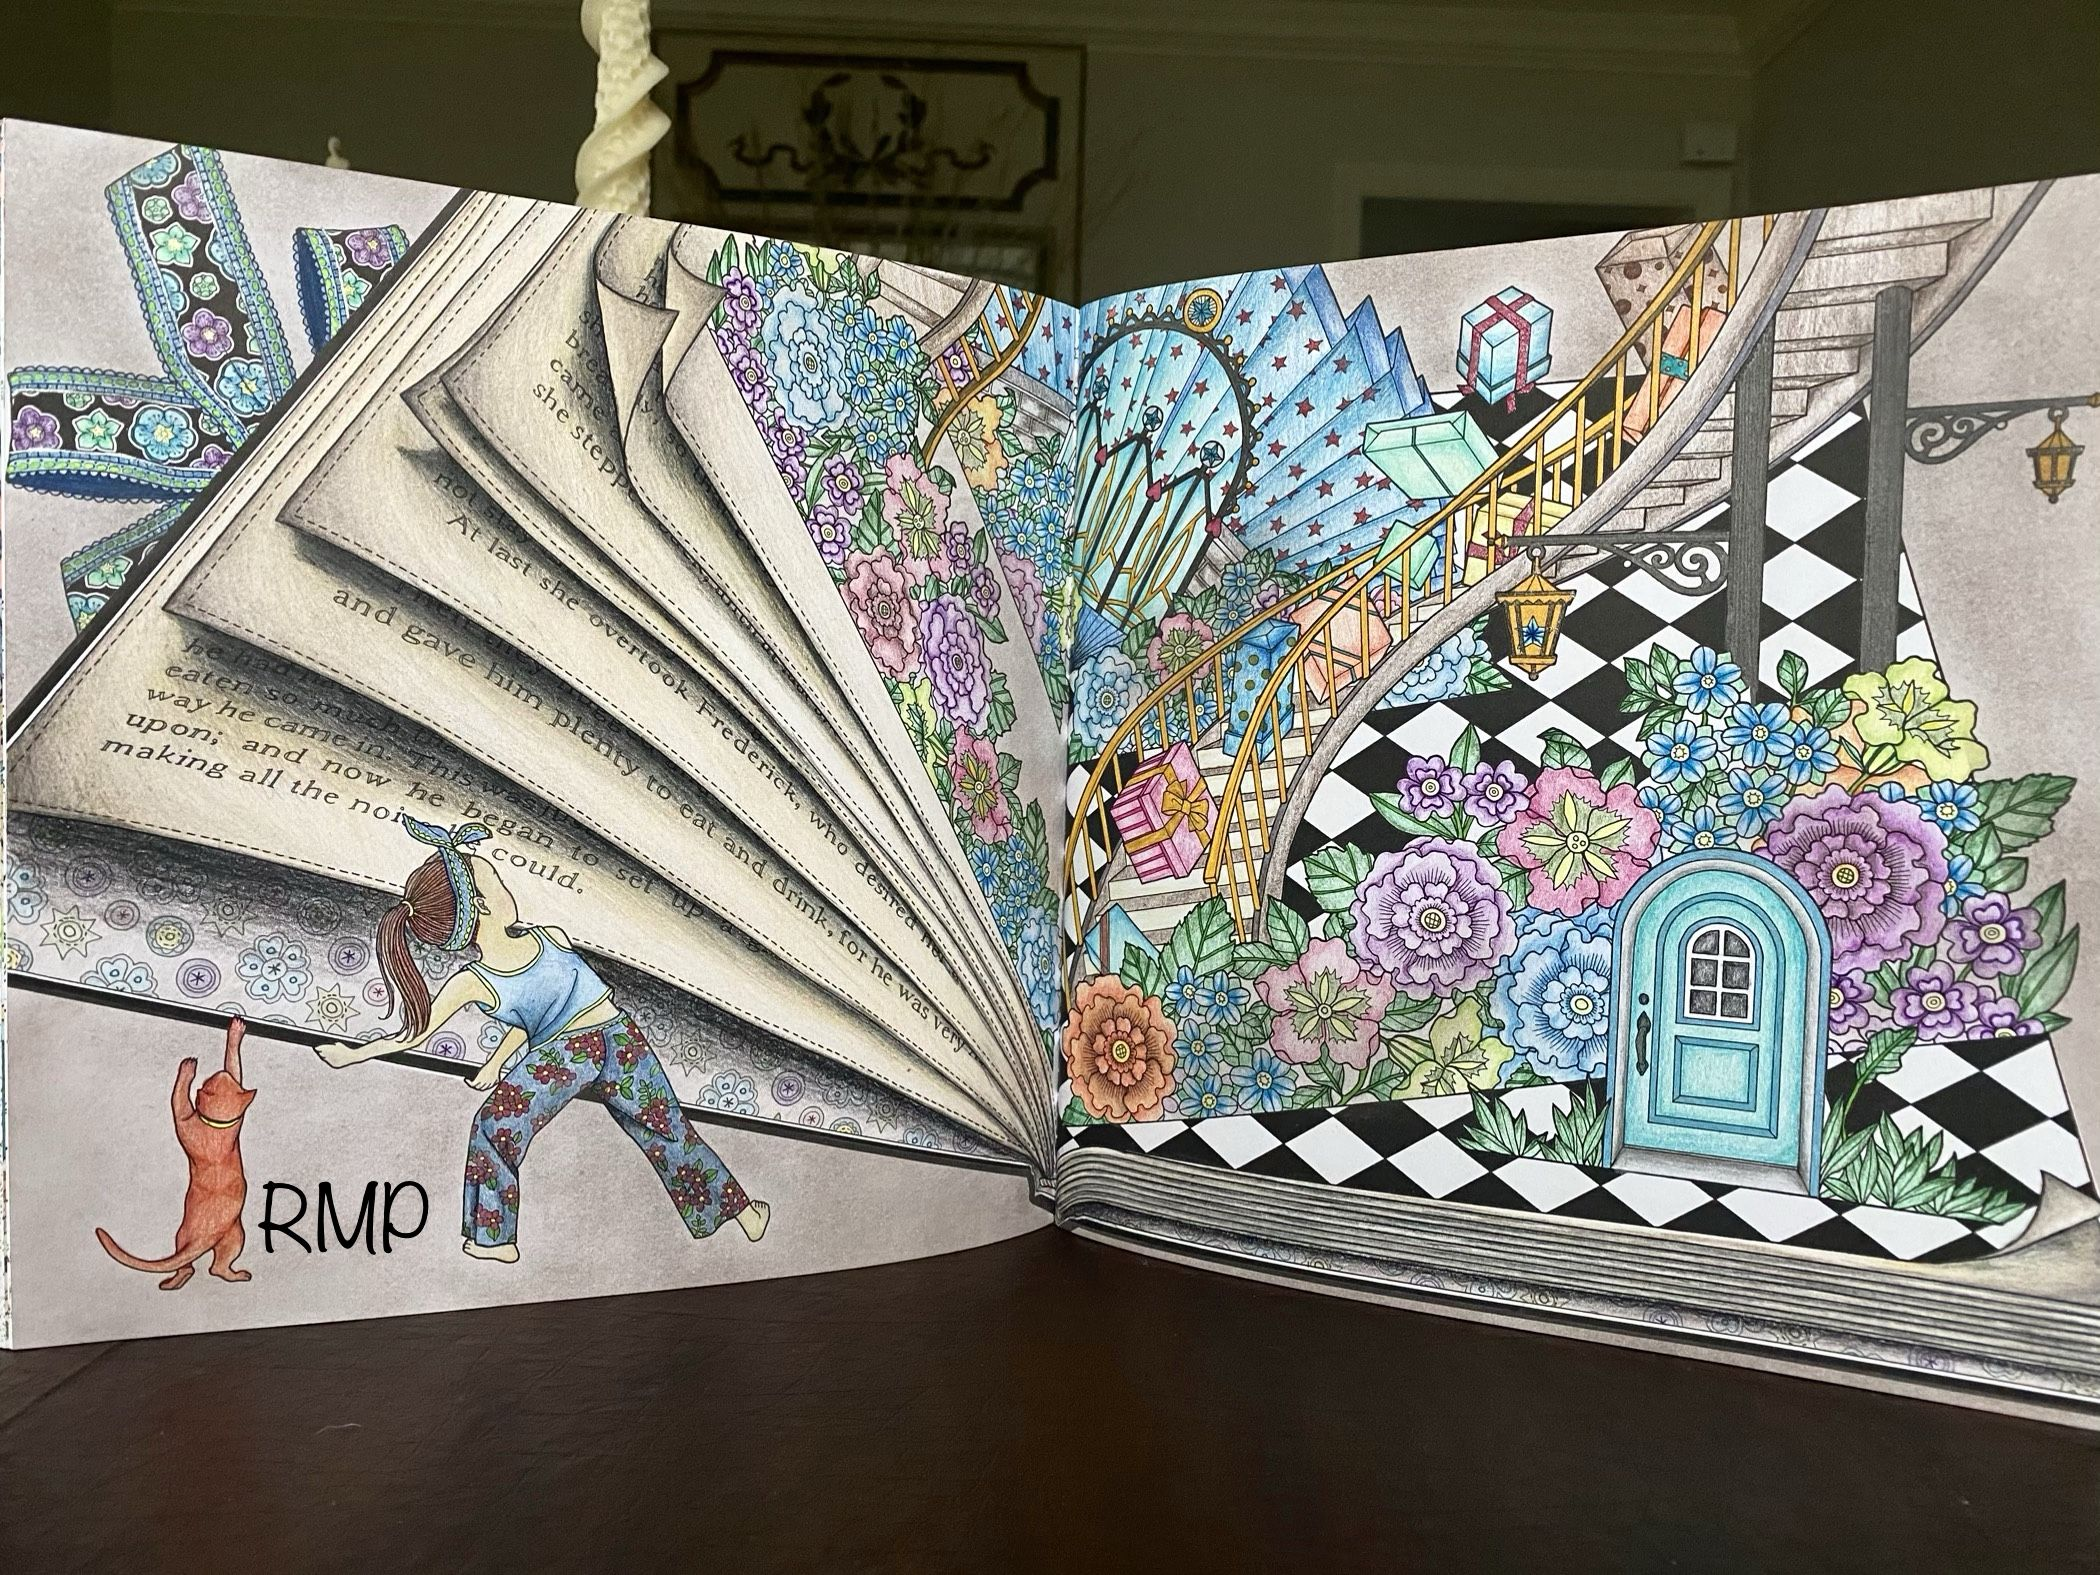 Thenightvoyage The Night Voyage Coloring Book Daria Song Prismacolor Premier Coloring Books Mystical Art Coloring Pages